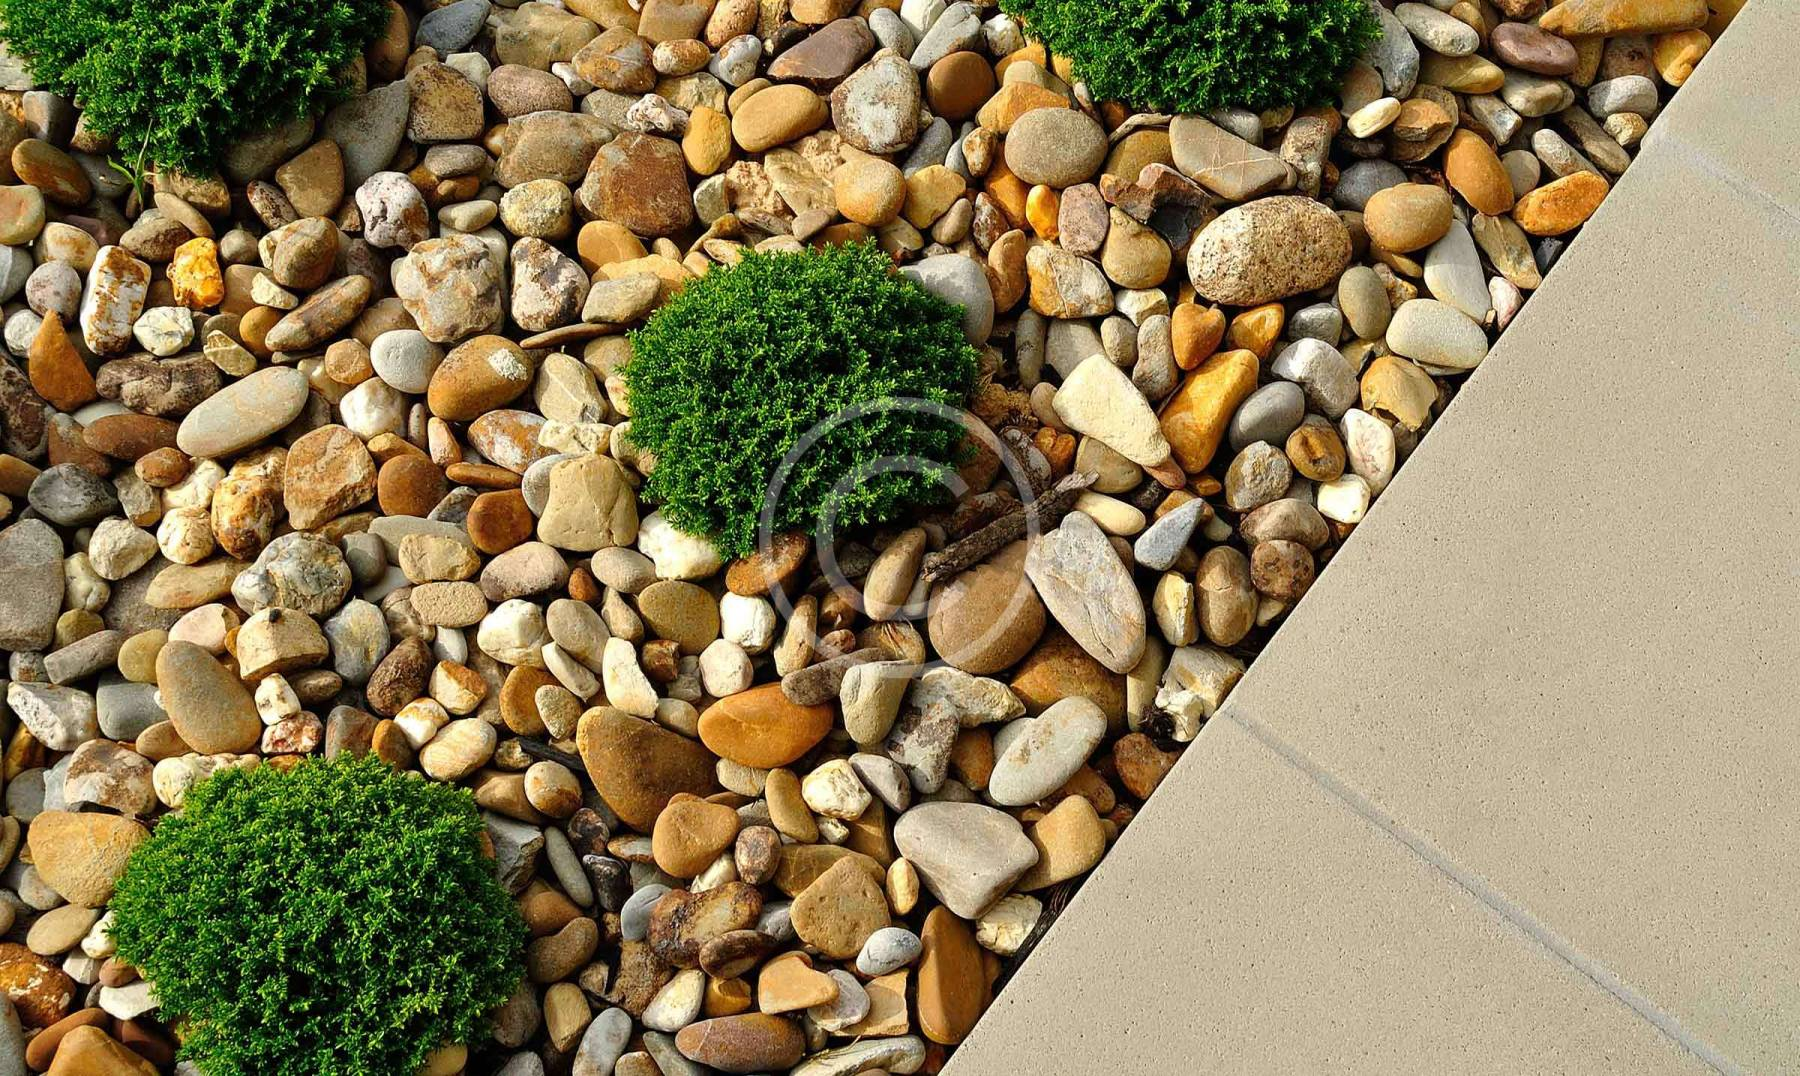 Backyard Landscaping Trends of 2015 Year